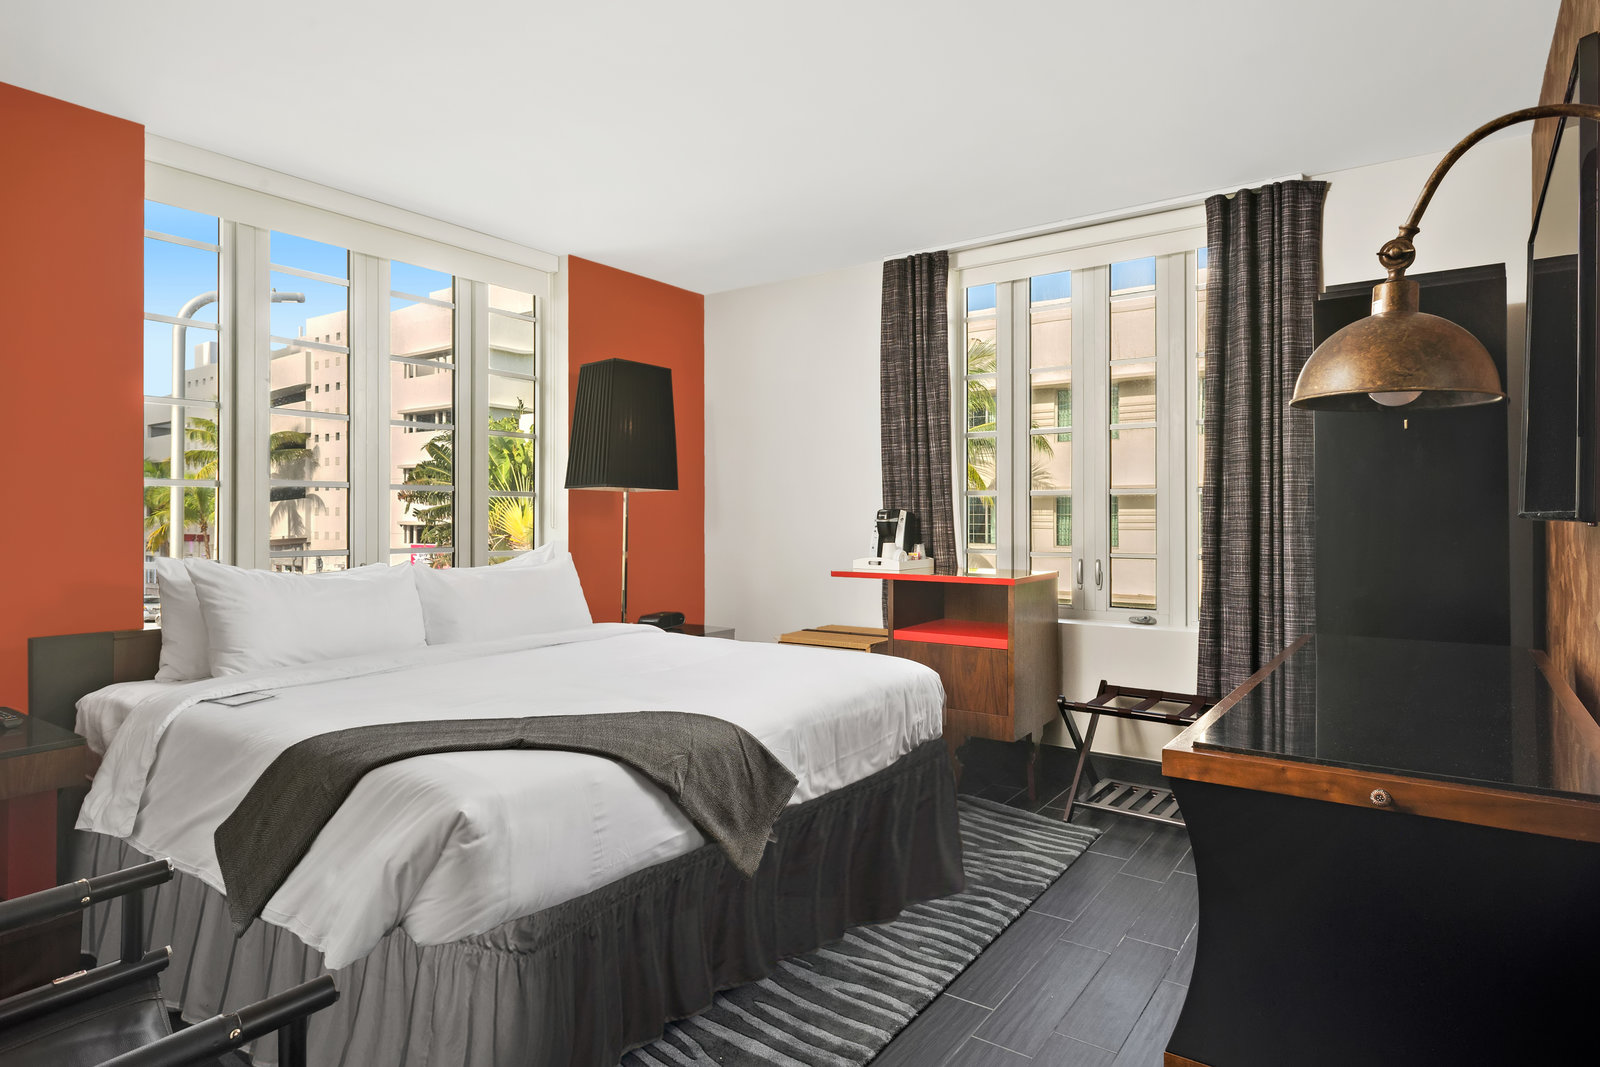 Fairwinds Customer Service >> Hotel In The Heart Of South Beach Miami With Beach Views